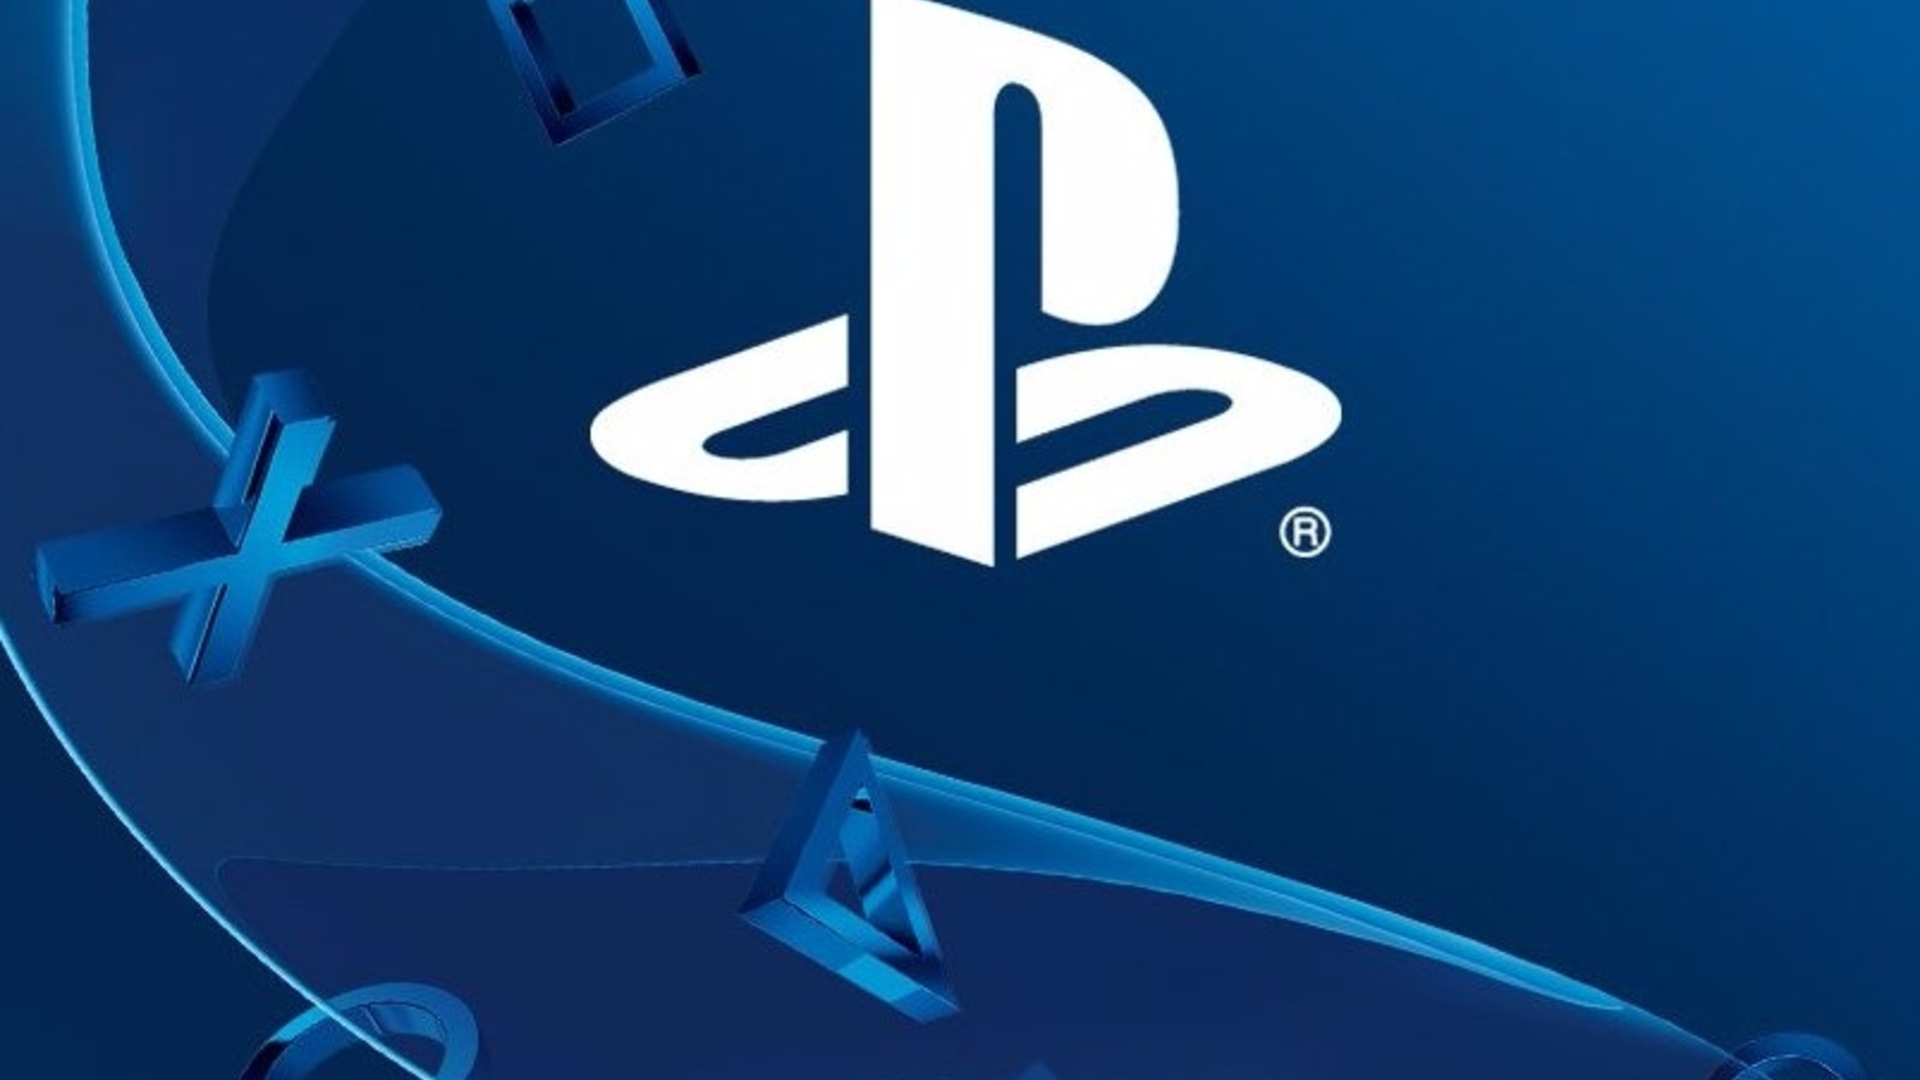 We know PlayStation 4.5 is real - but why is Sony making it?